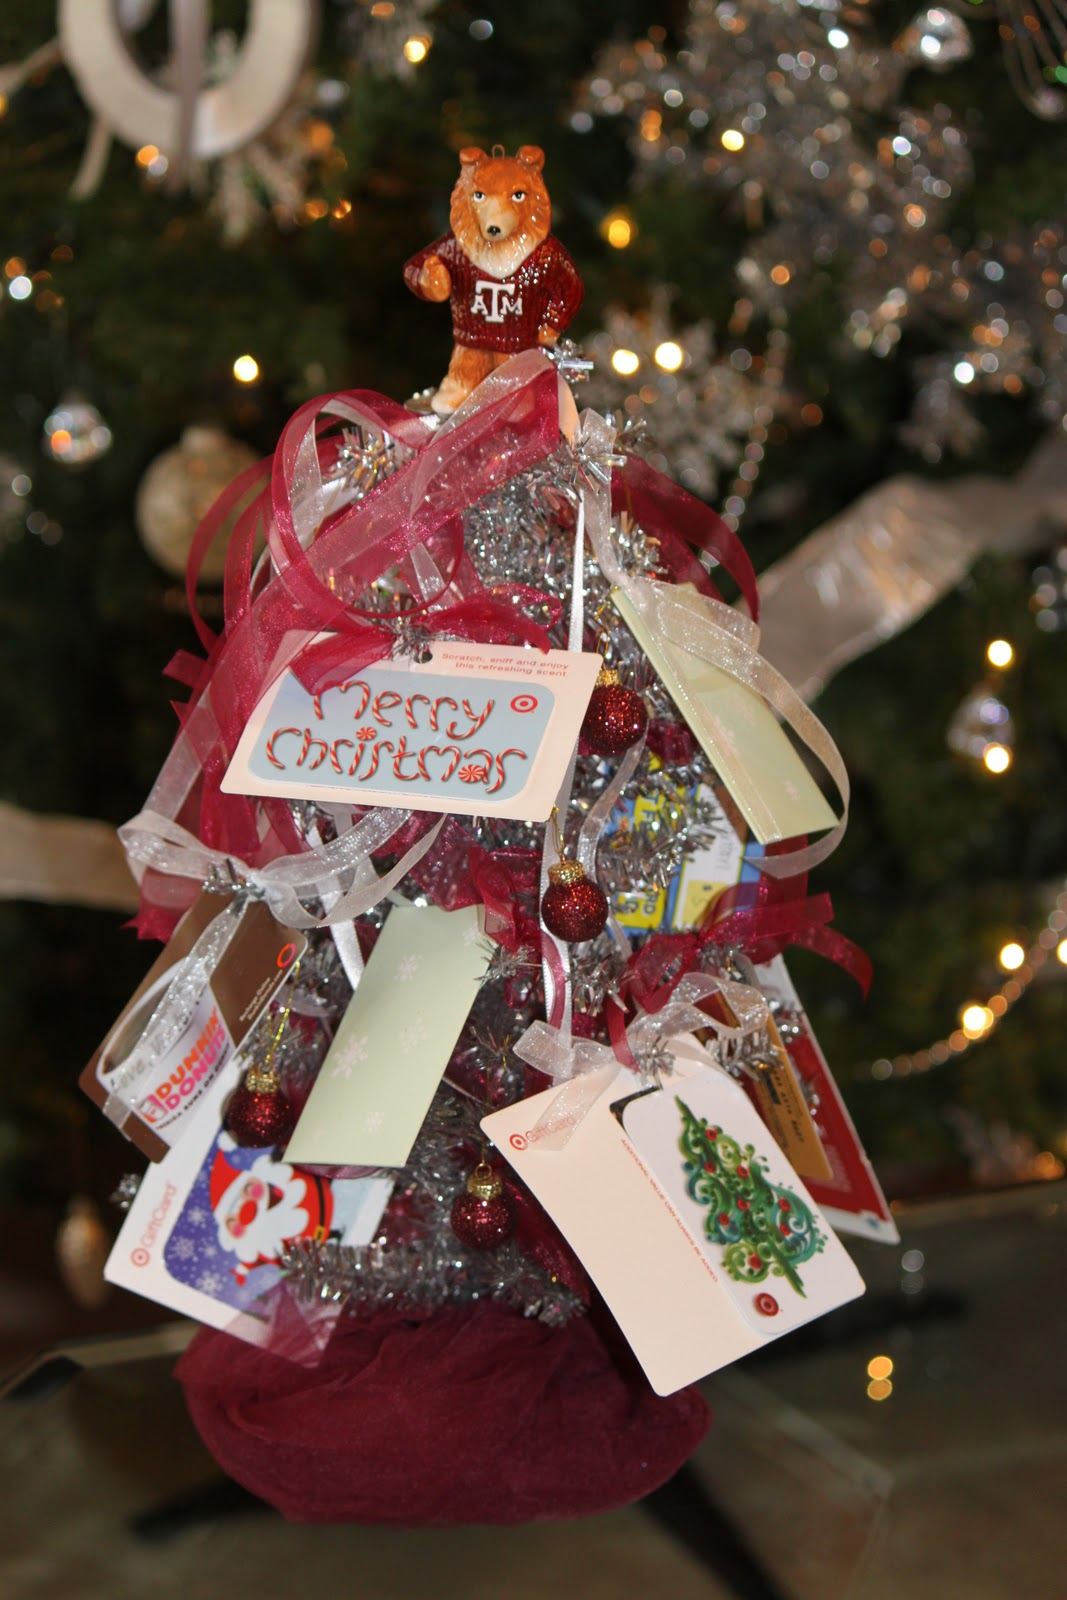 The Blackberry Vine: Gift Card Christmas Tree